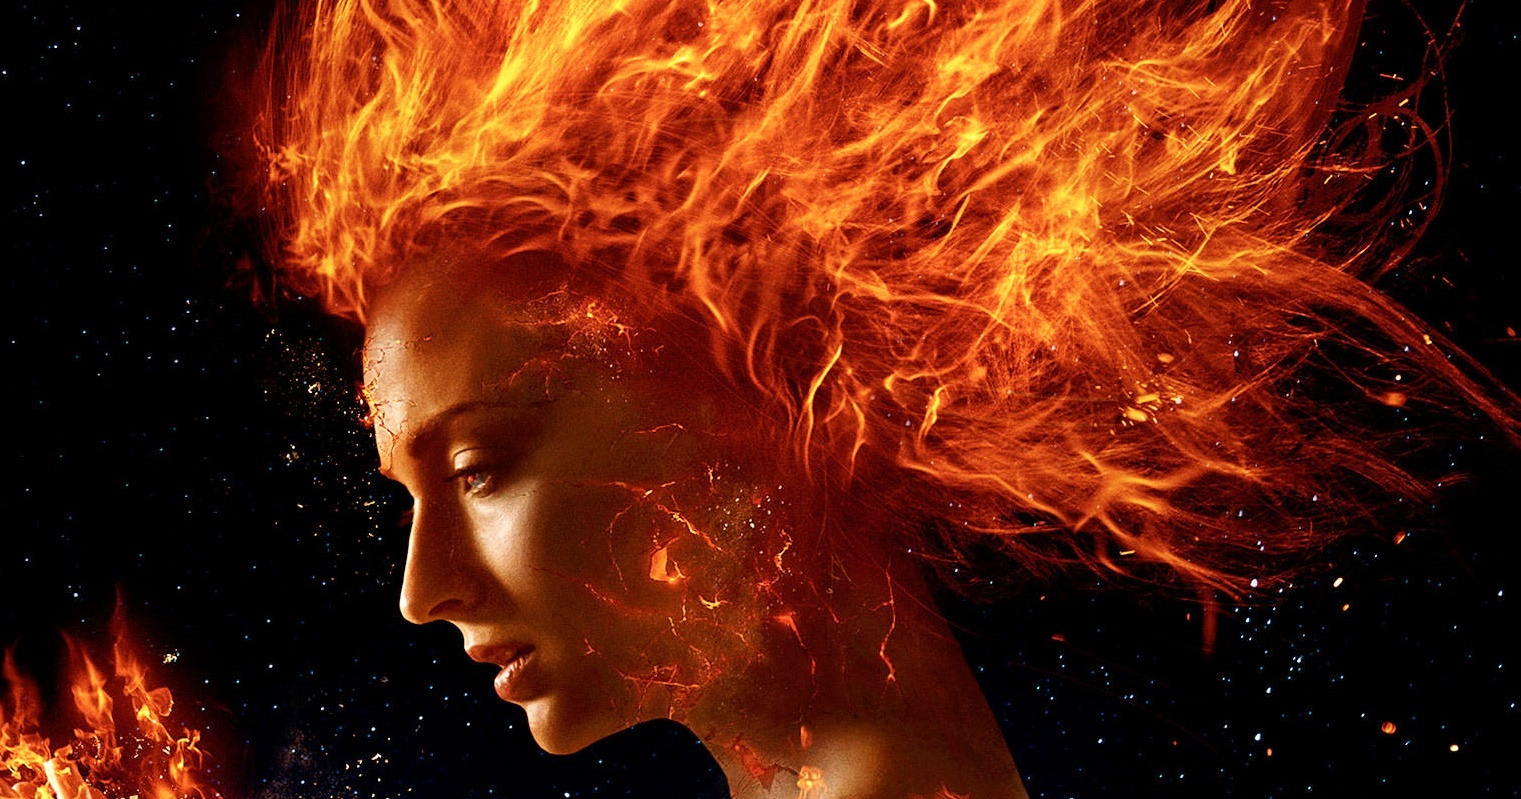 xmen-darkphoenix-index.jpg